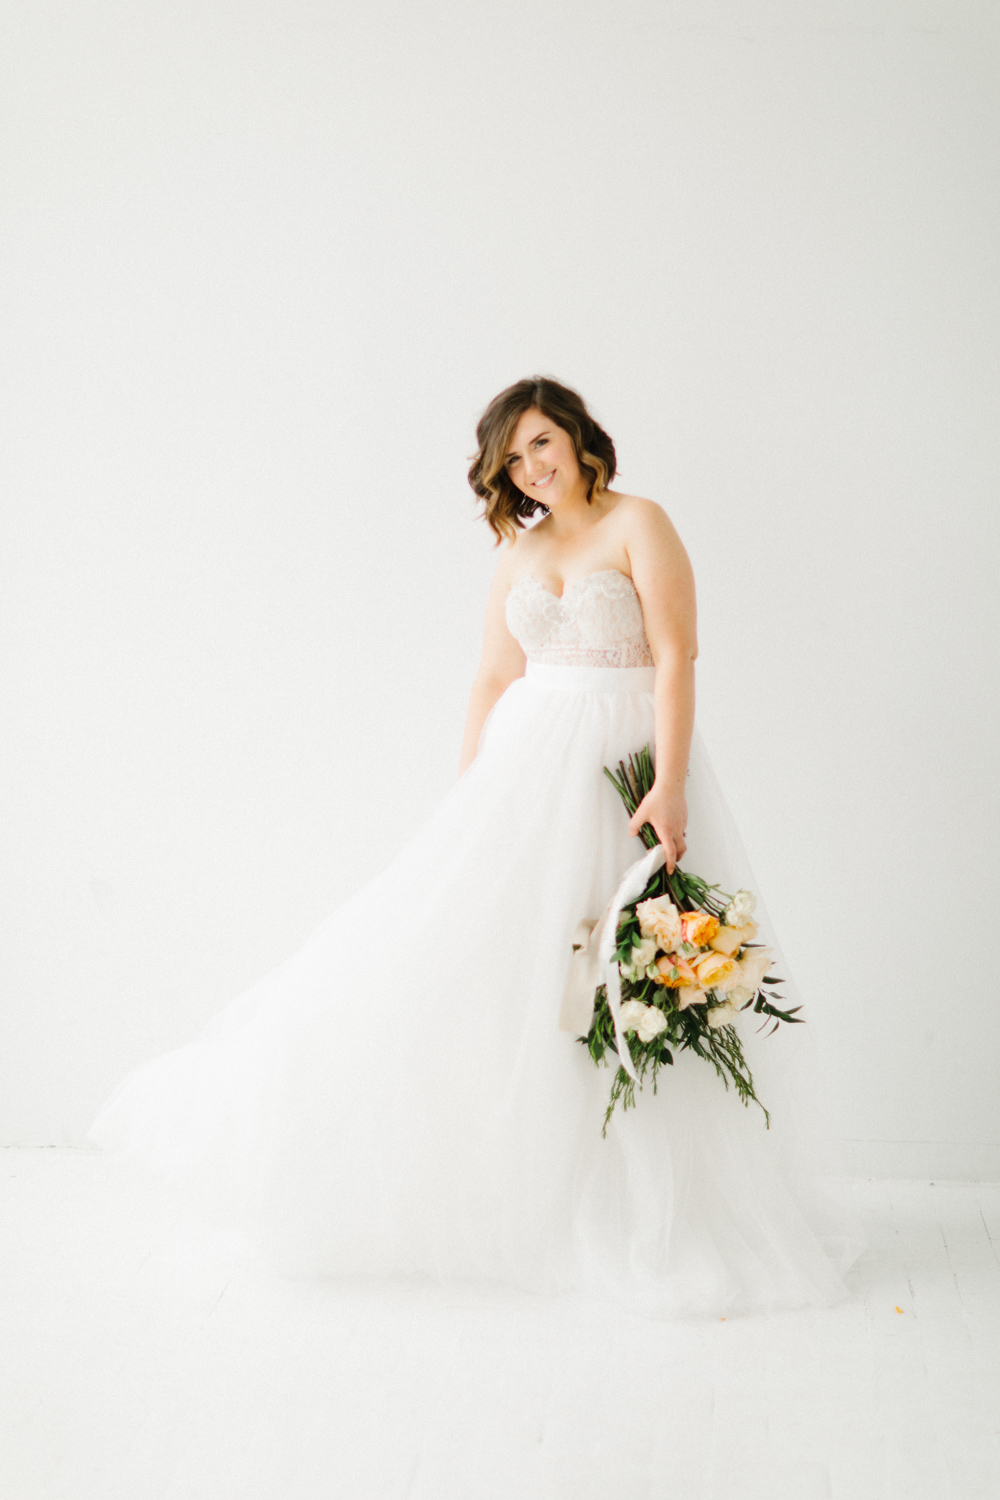 Seattle Fine Art Wedding Photographer | Seattle Downtown White Studio Bridal Session | Stunning Wedding Bouquet | Seattle Bride | Seattle Wedding | Photography Studio Space | Emma Rose Company Wedding Photography-7.jpg